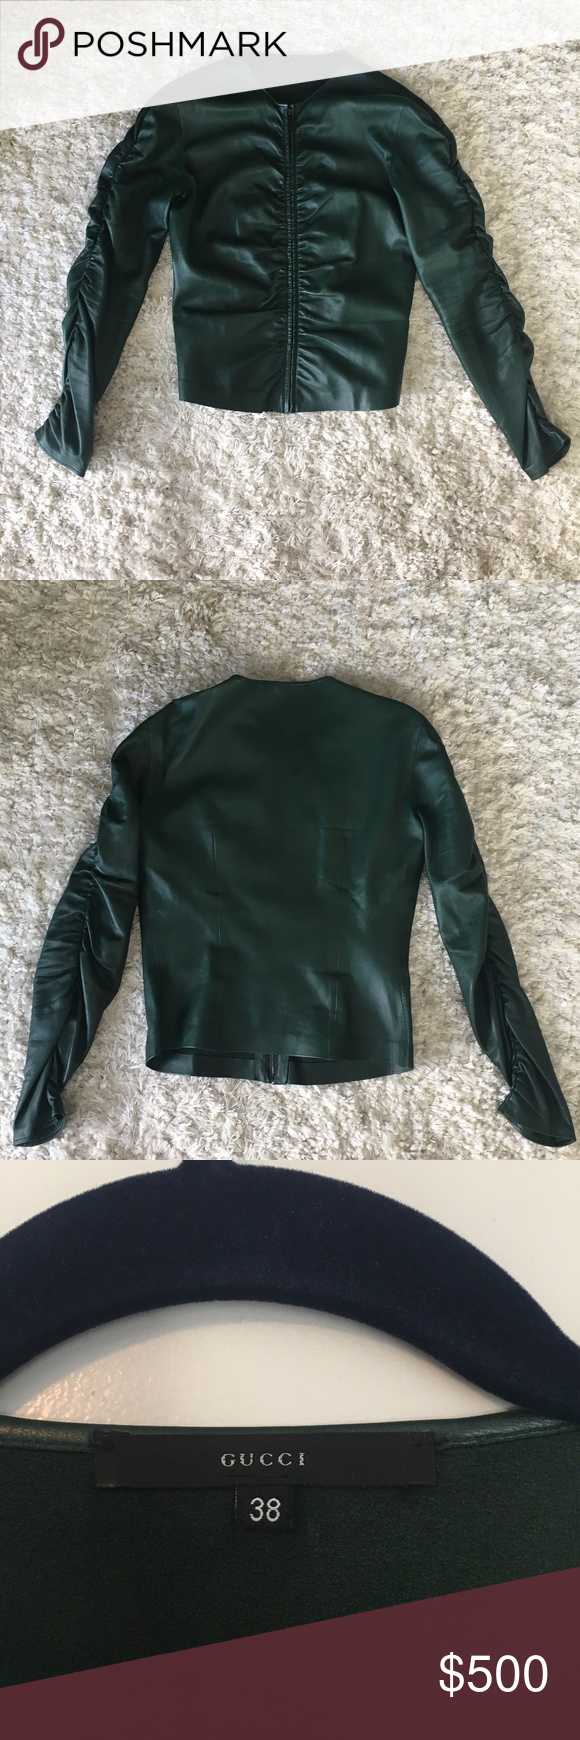 99bbf8d1b Gucci Hunter Green Leather Ruched Zip Up Jacket Fitted leather jacket with  ruched detail throughout. Long sleeves with front zip closure, unlined.